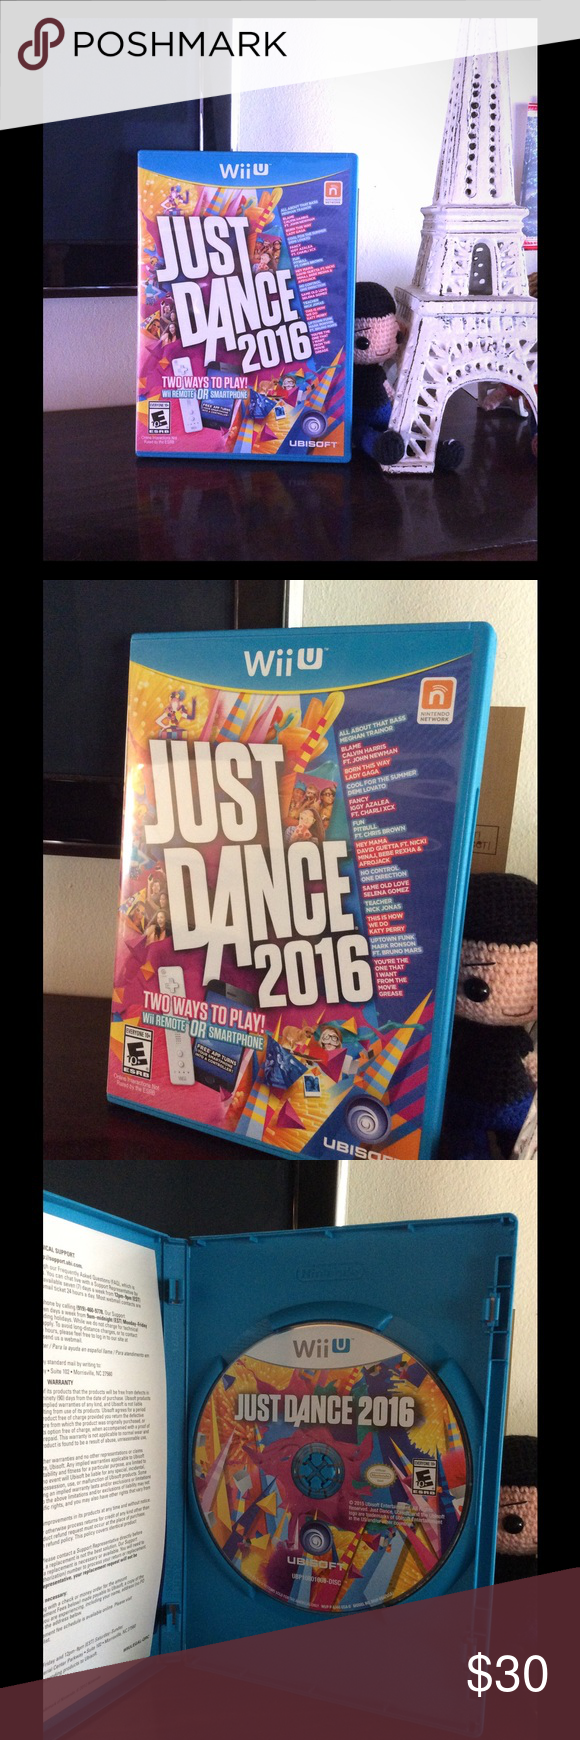 Just Dance 2016 (Wii U) Just Dance (Compatible with Wii U) - Good Condition (played 2-3 times) - Introducing Just Dance 2016 the newest game from the top-selling franchise with a new way to play All you need is your smartphone and the free Just Dance Controller App to play Just Dance 2016 on console, no extra Wii Remotes needed. Wii U Other